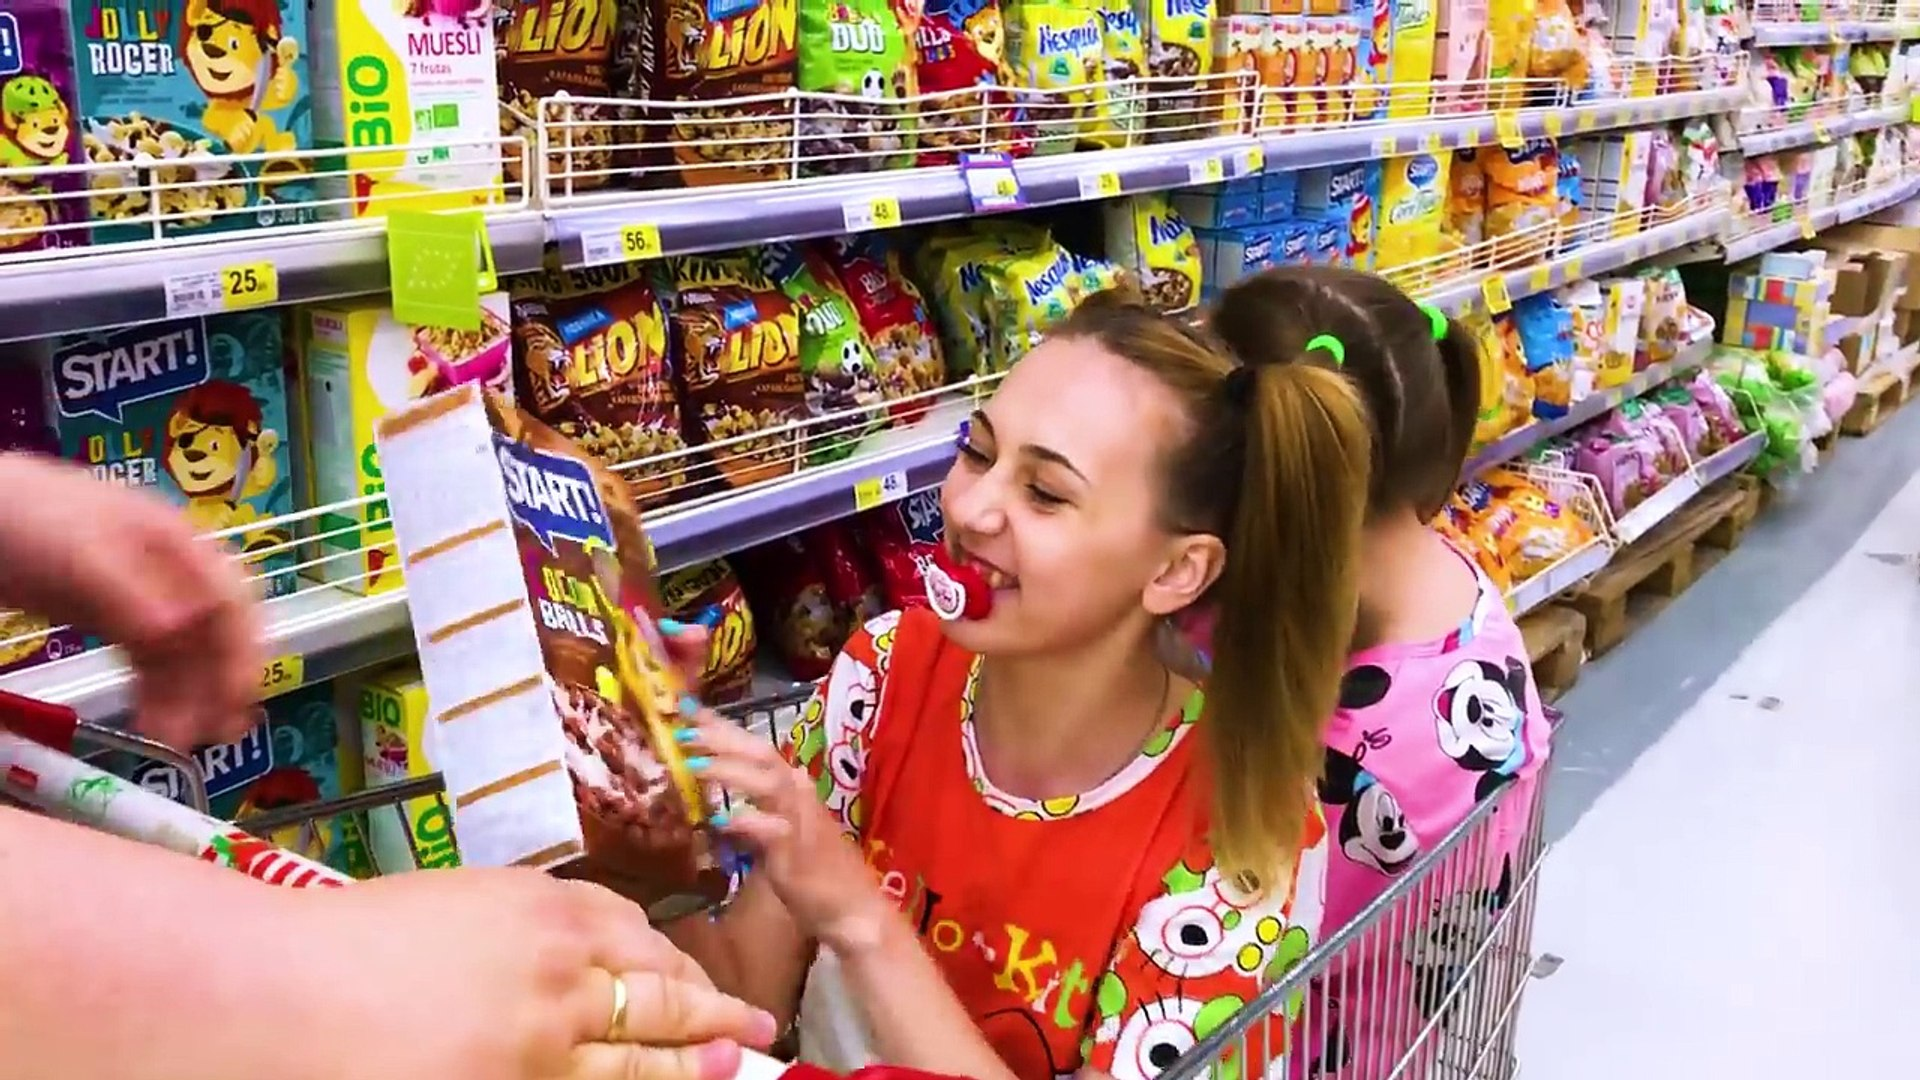 bad baby real food fight victoria vs annabelle freak daddy toy freaks family video dailymotion bad baby real food fight victoria vs annabelle freak daddy toy freaks family